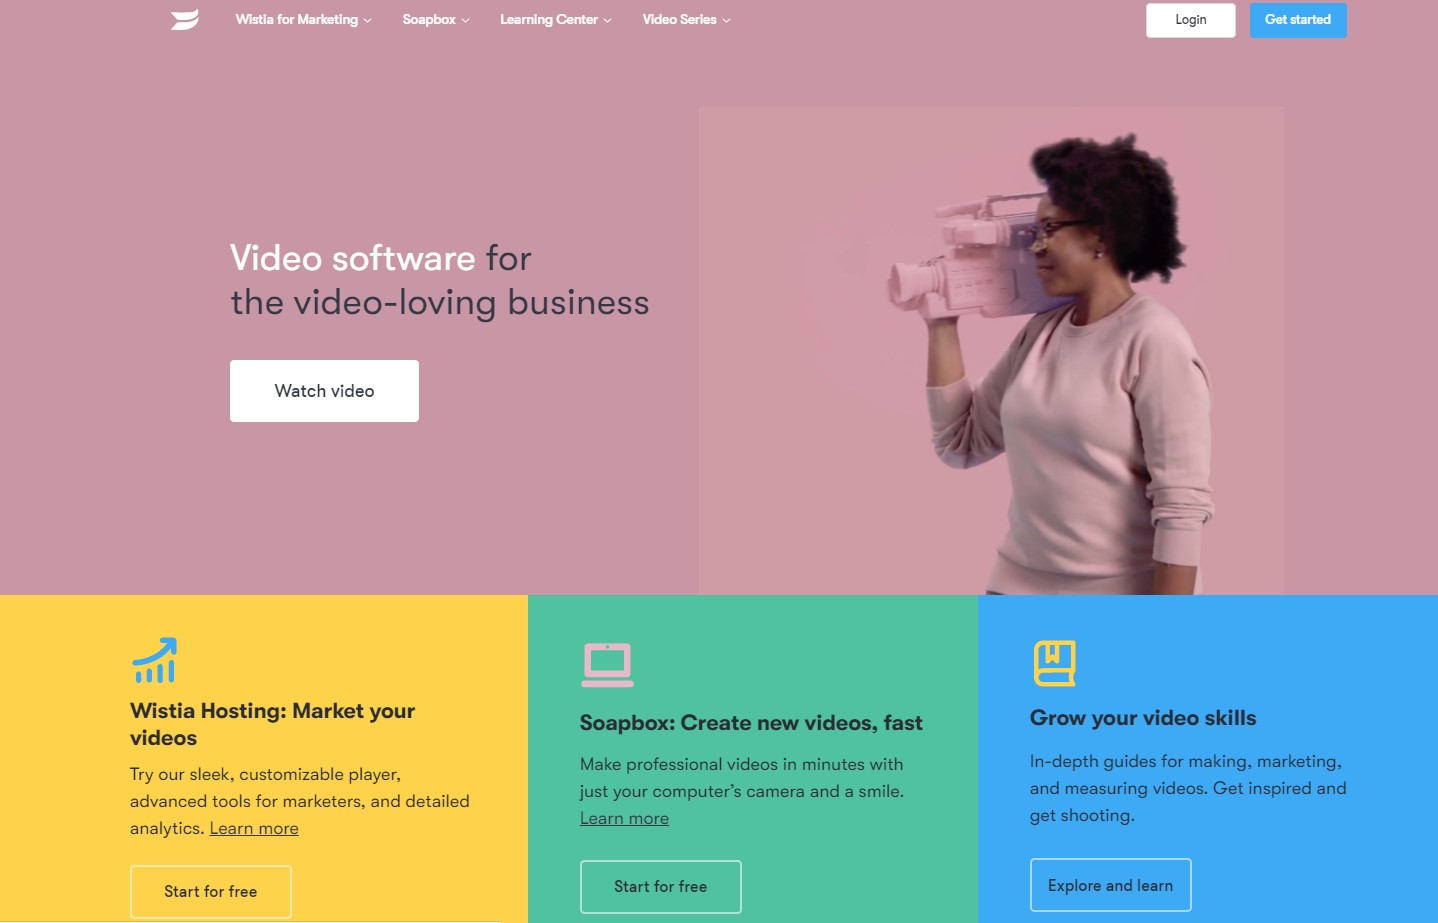 wistia for Video Marketing